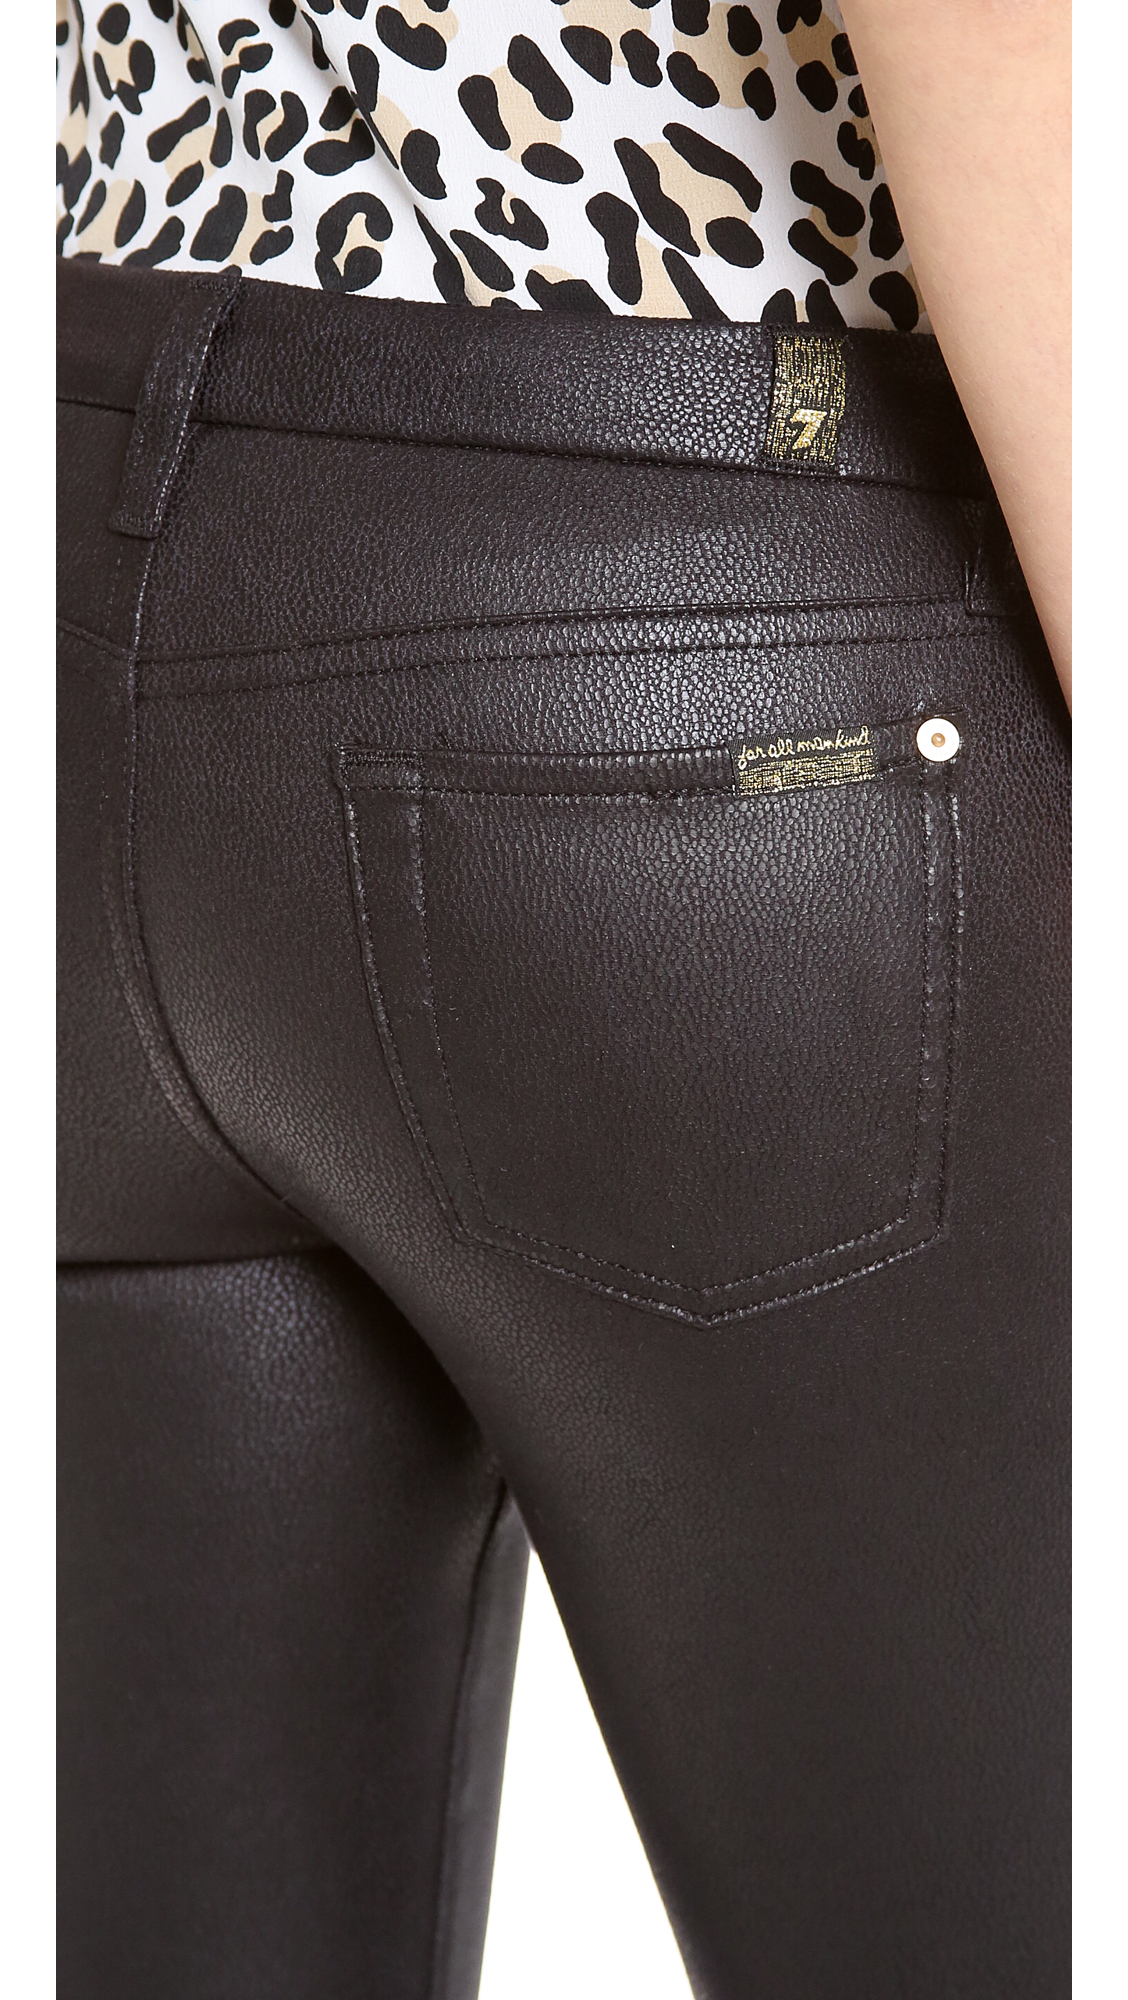 7 For All Mankind Faux Crackle Leather Skinny Pants | 15% off ...